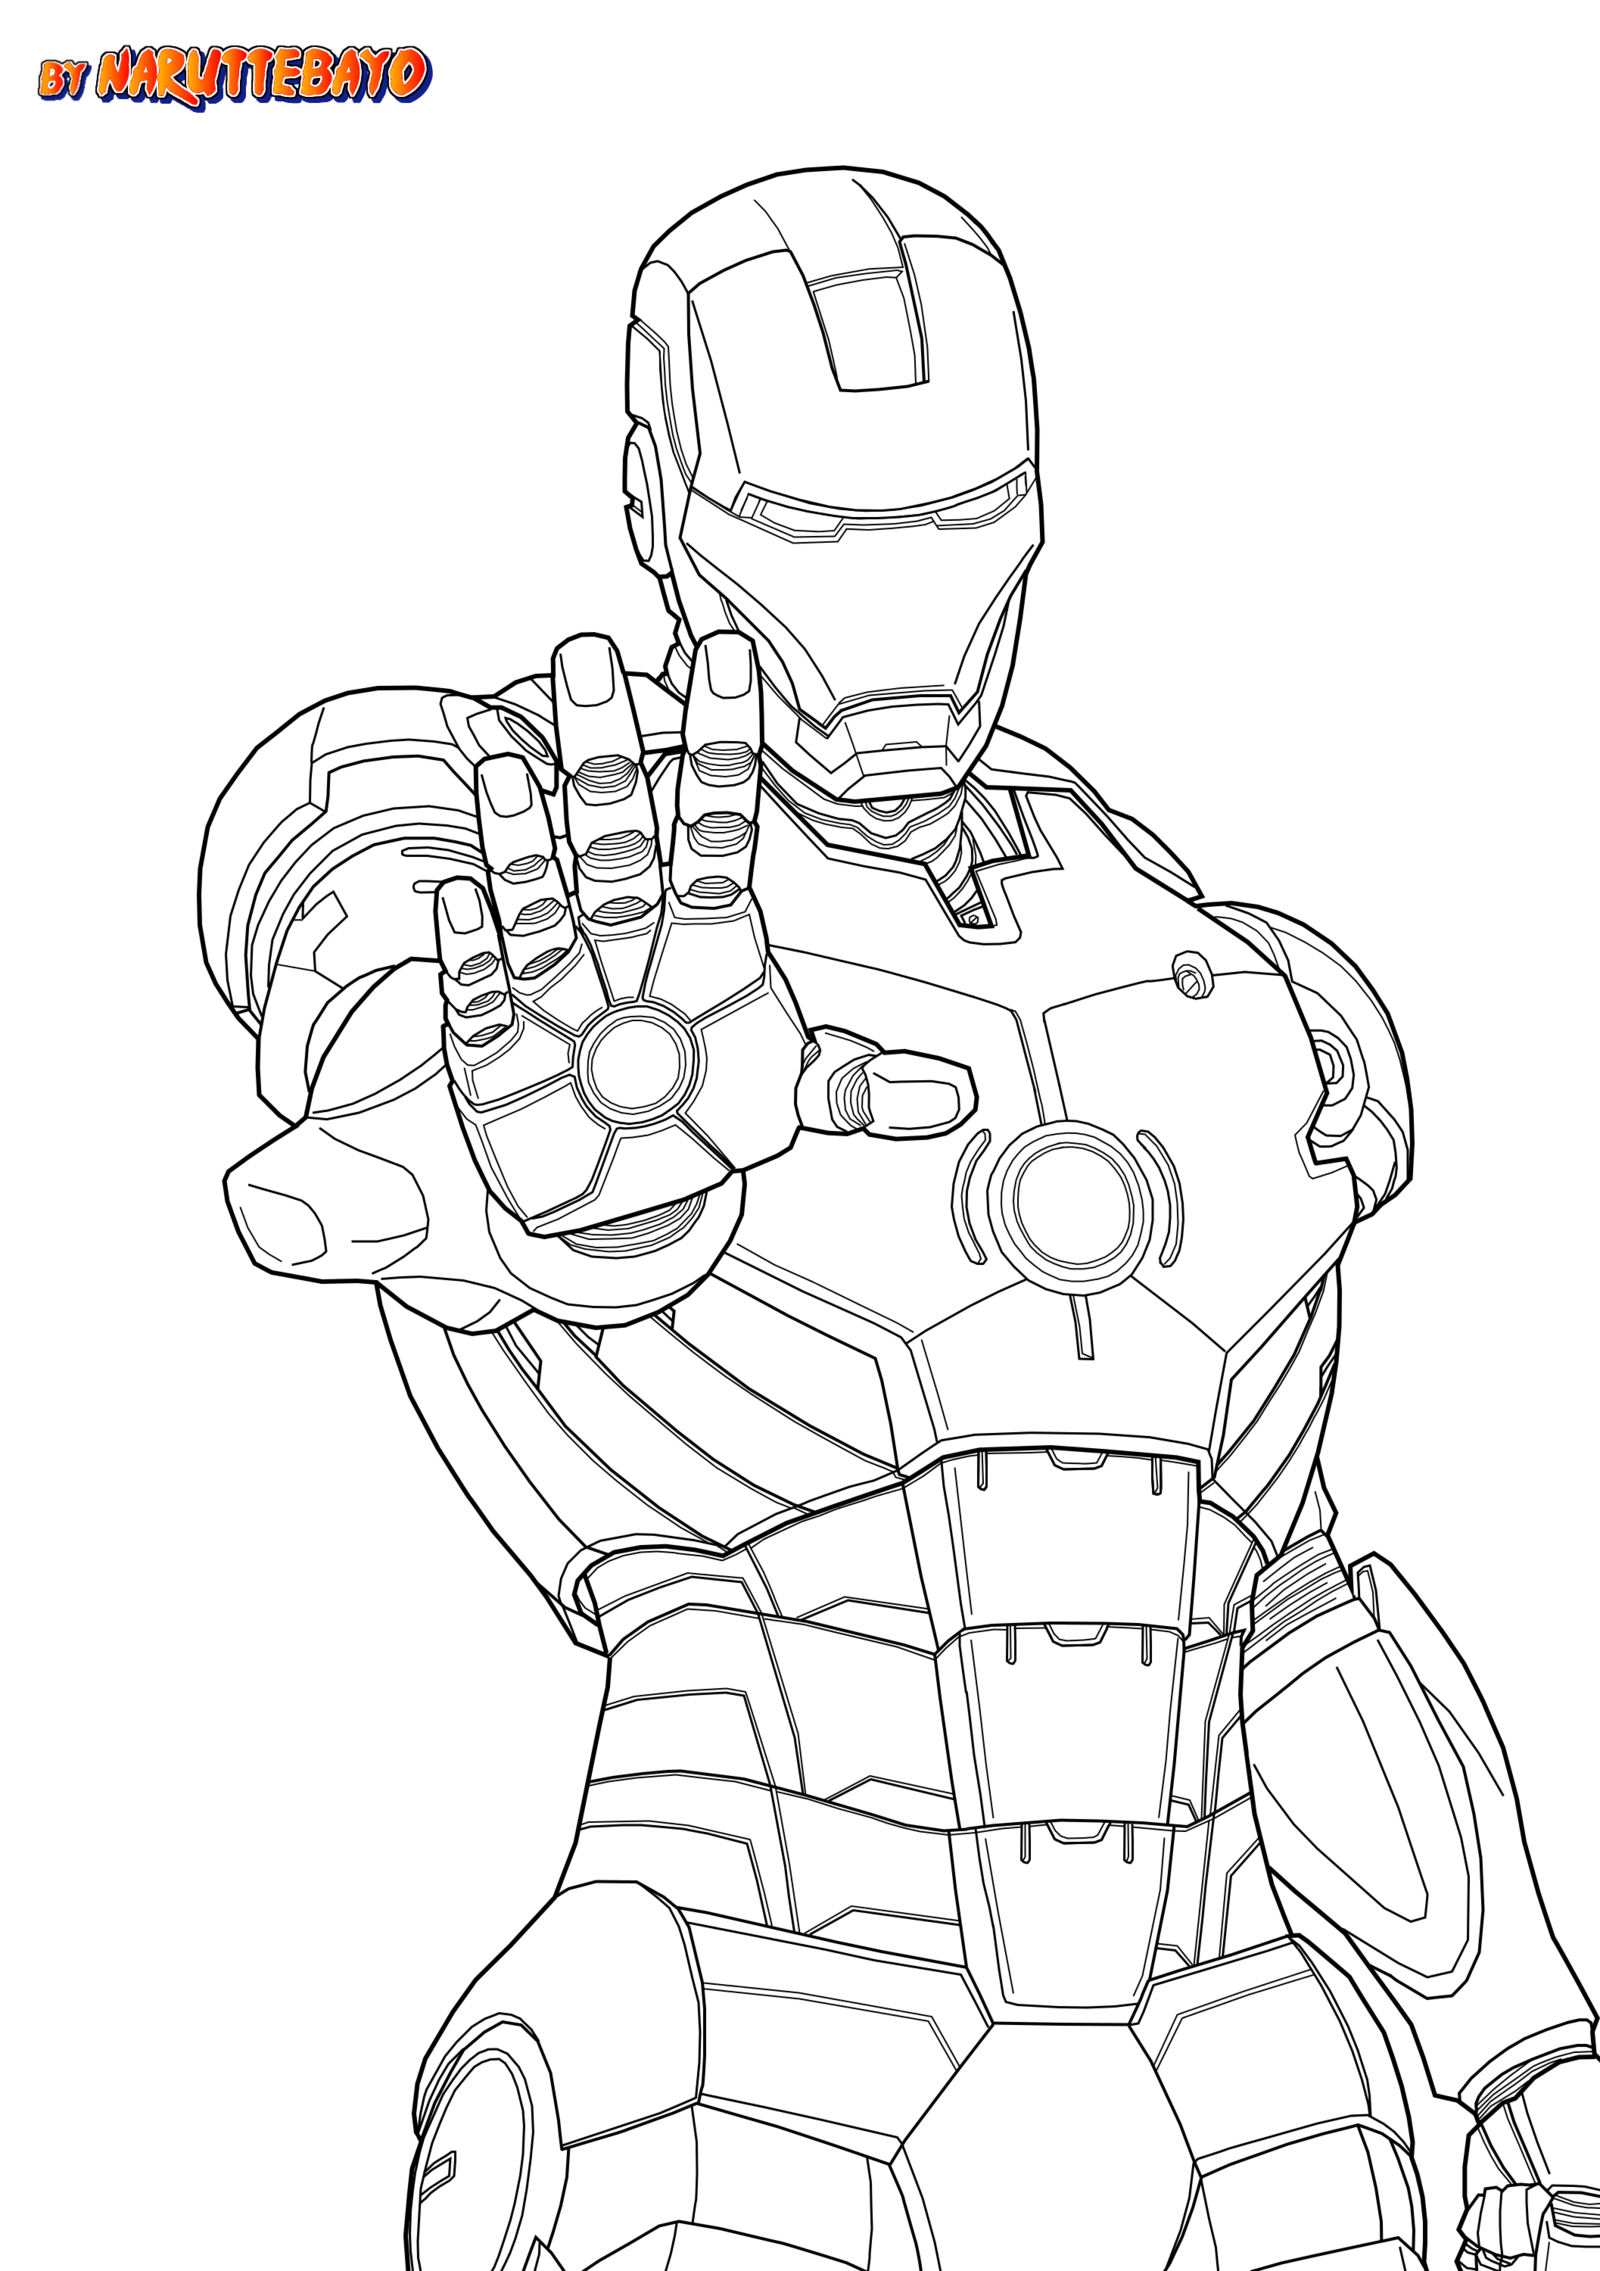 iron man art - Google Search | dessin | Pinterest | Dibujos para ...